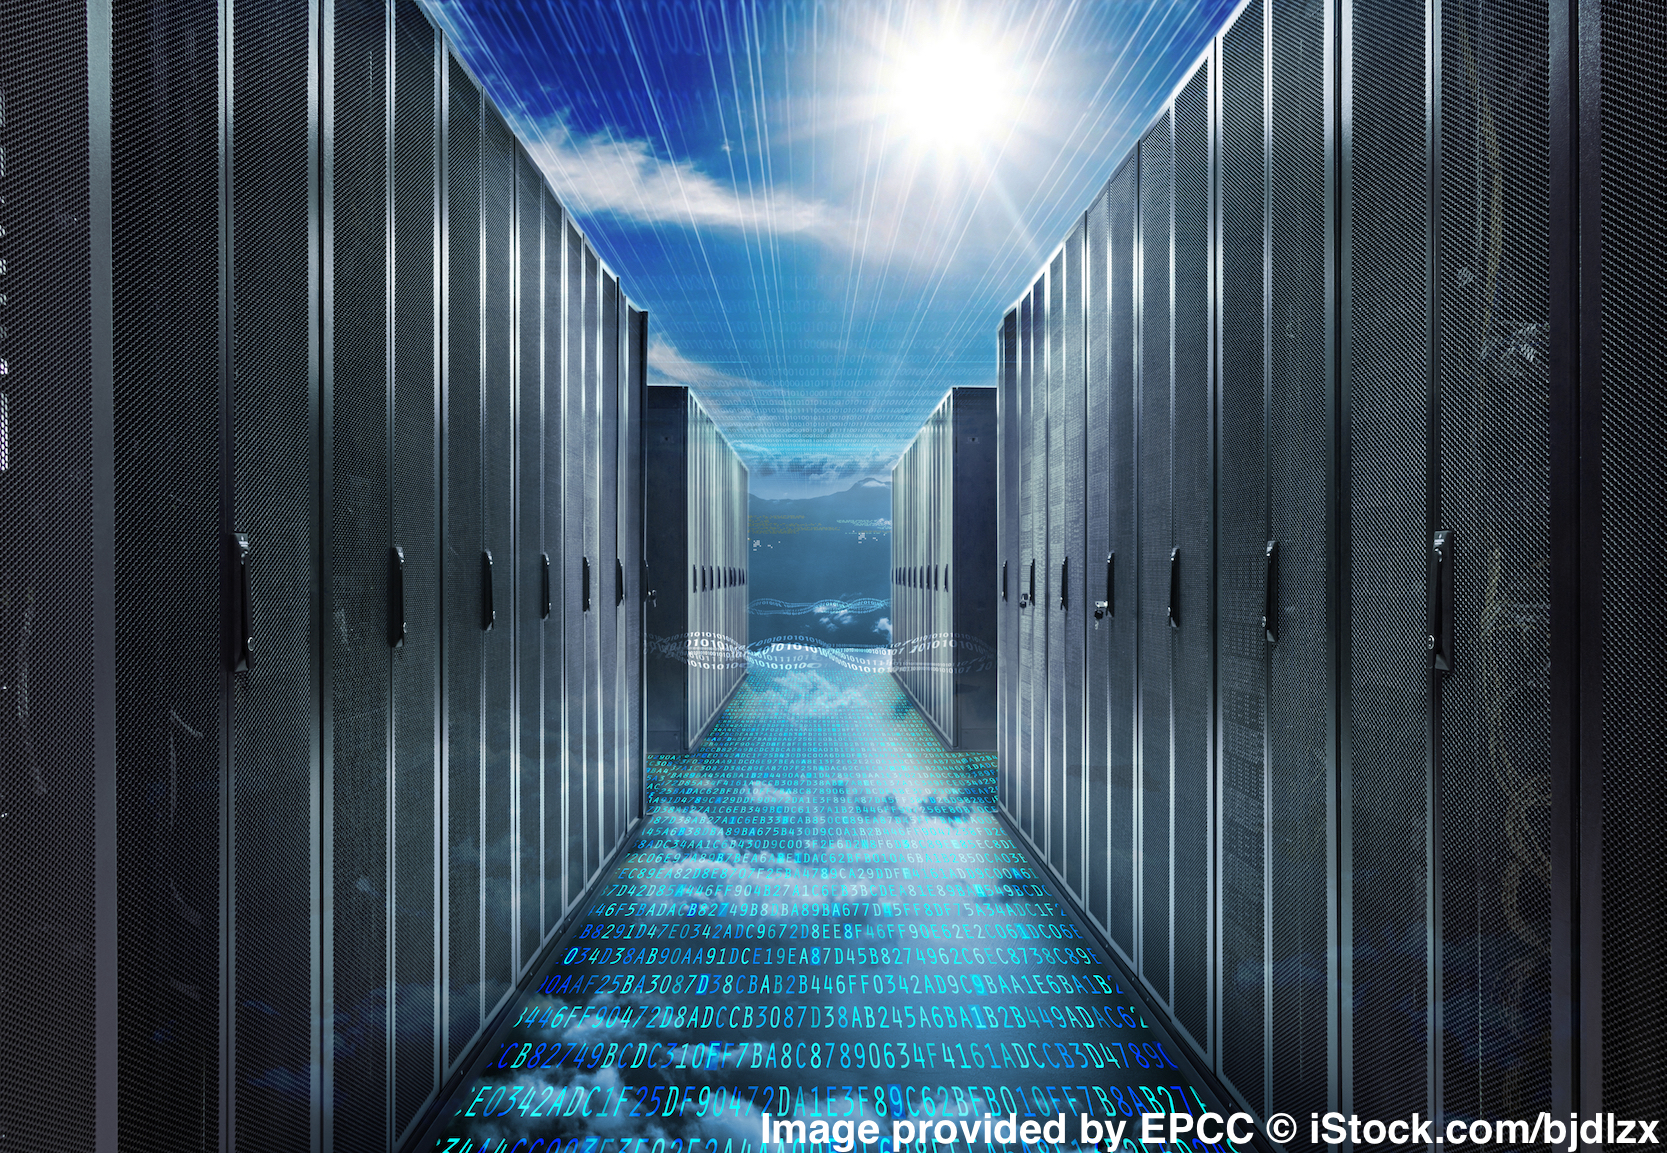 Supercomputing free online course, FutureLearn